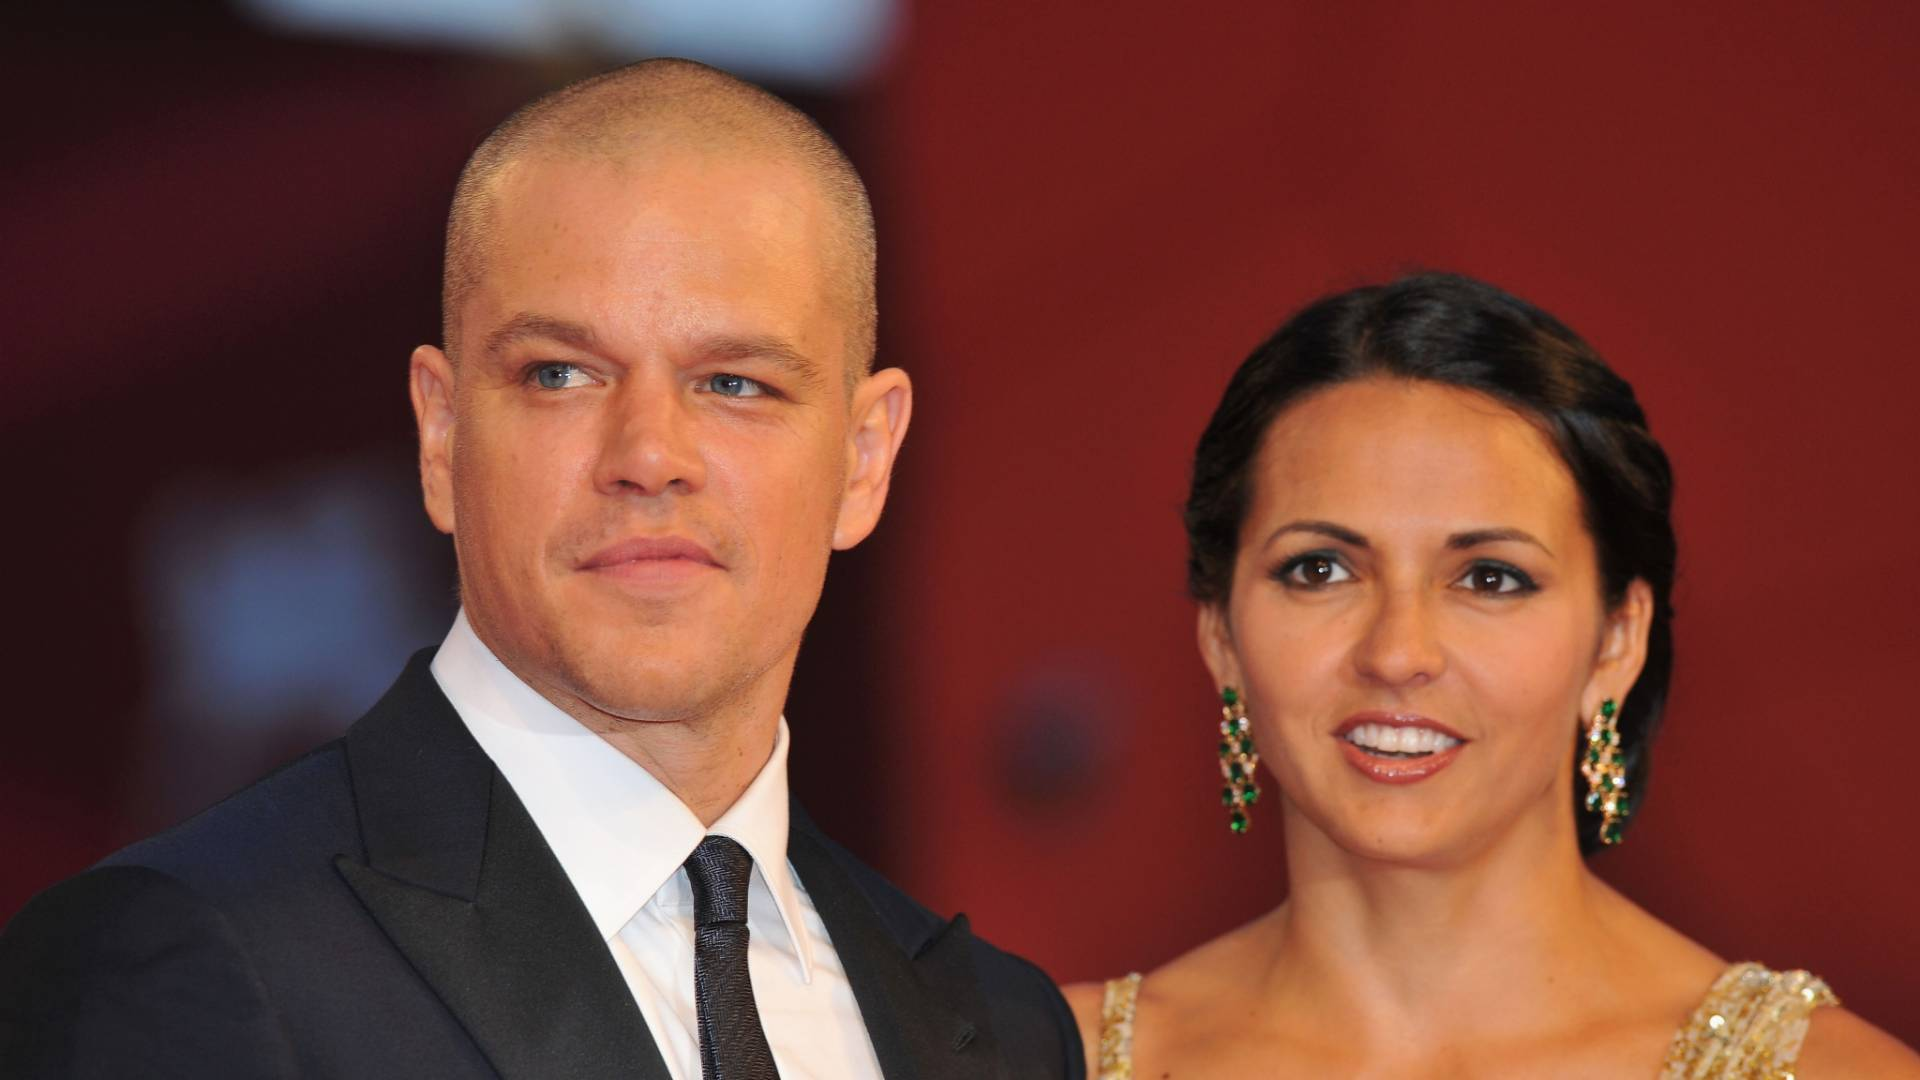 Matt Damon e Luciana Barroso no tapete vermelho na pr-estreia do filme 